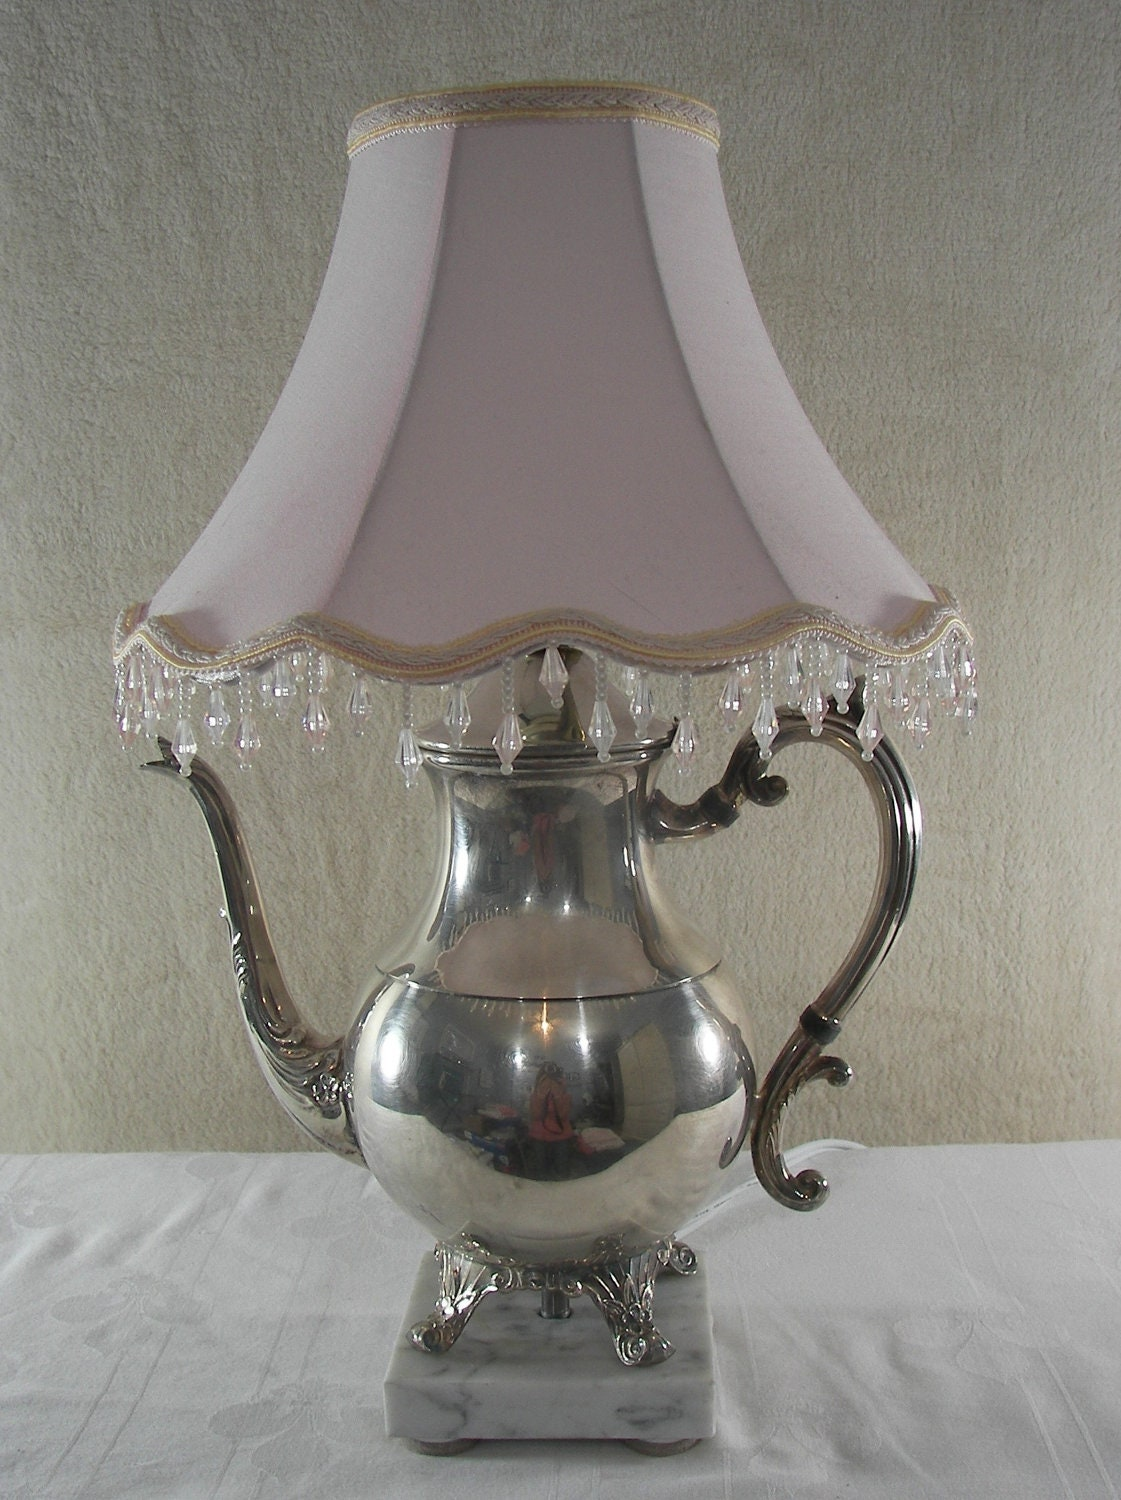 Vintage Silver Plated Teapot Lamp Repurposed Upcycled